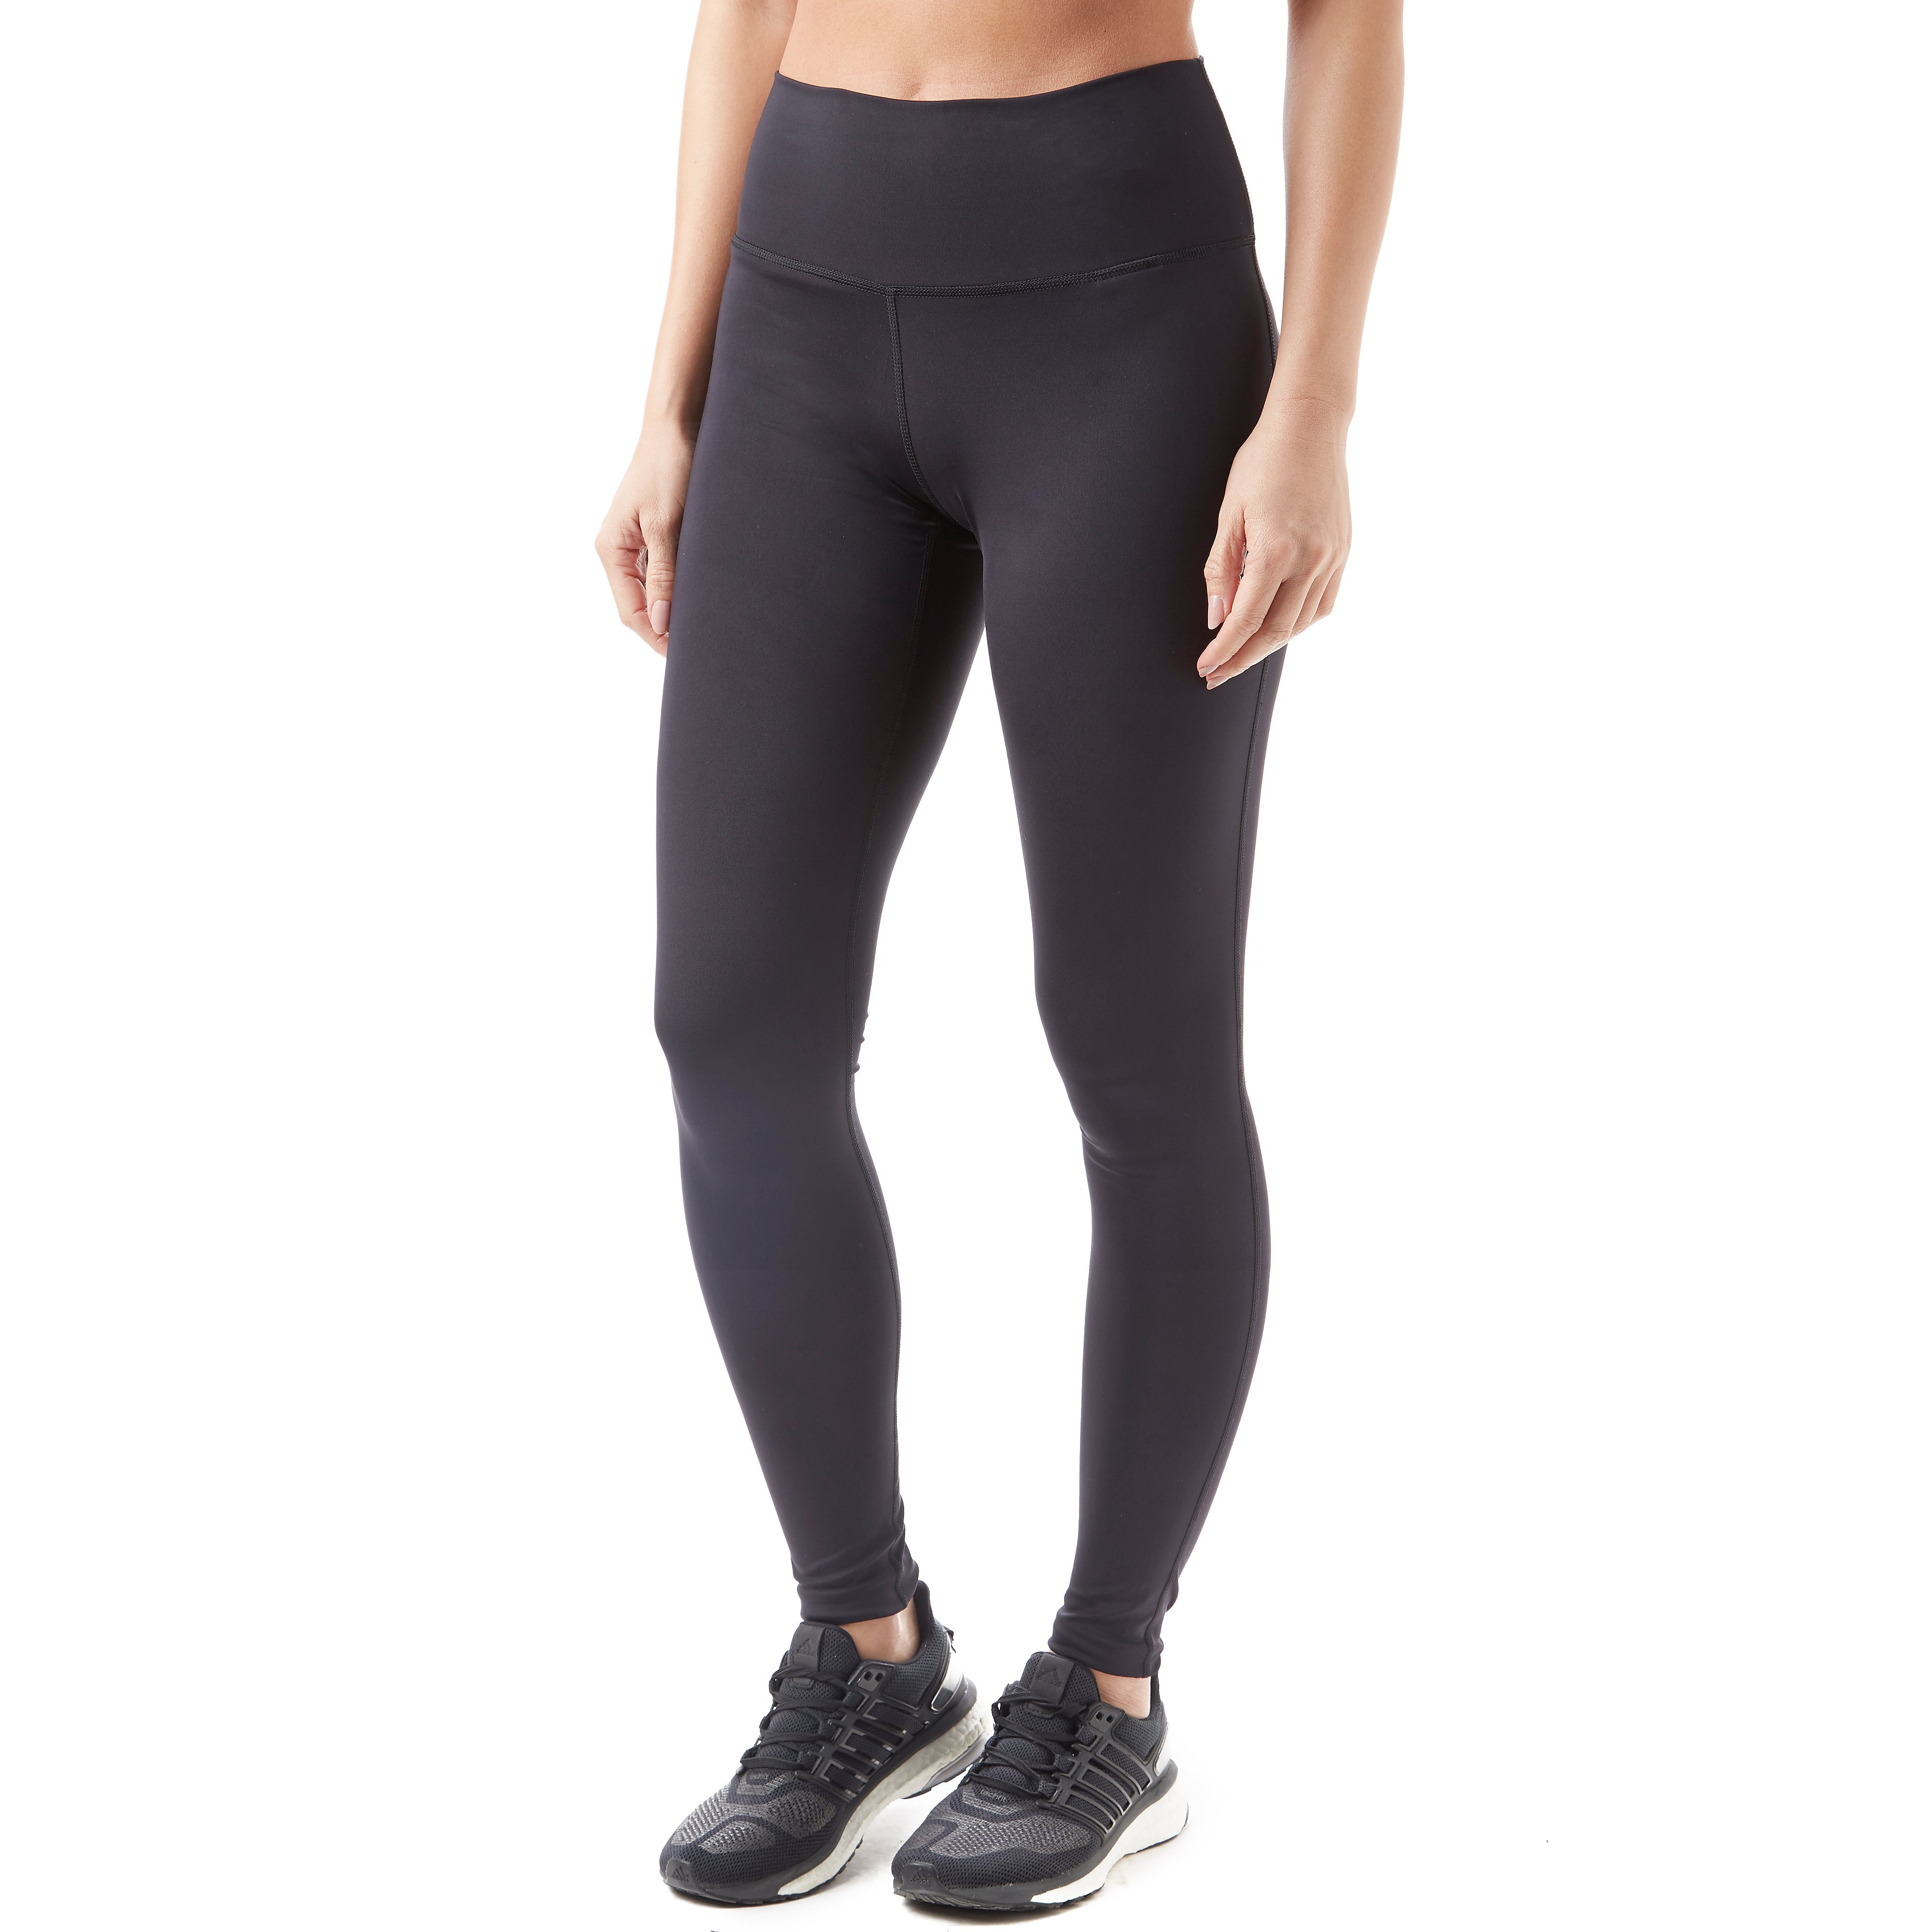 adidas Believe This High-Rise Women's Training Tights